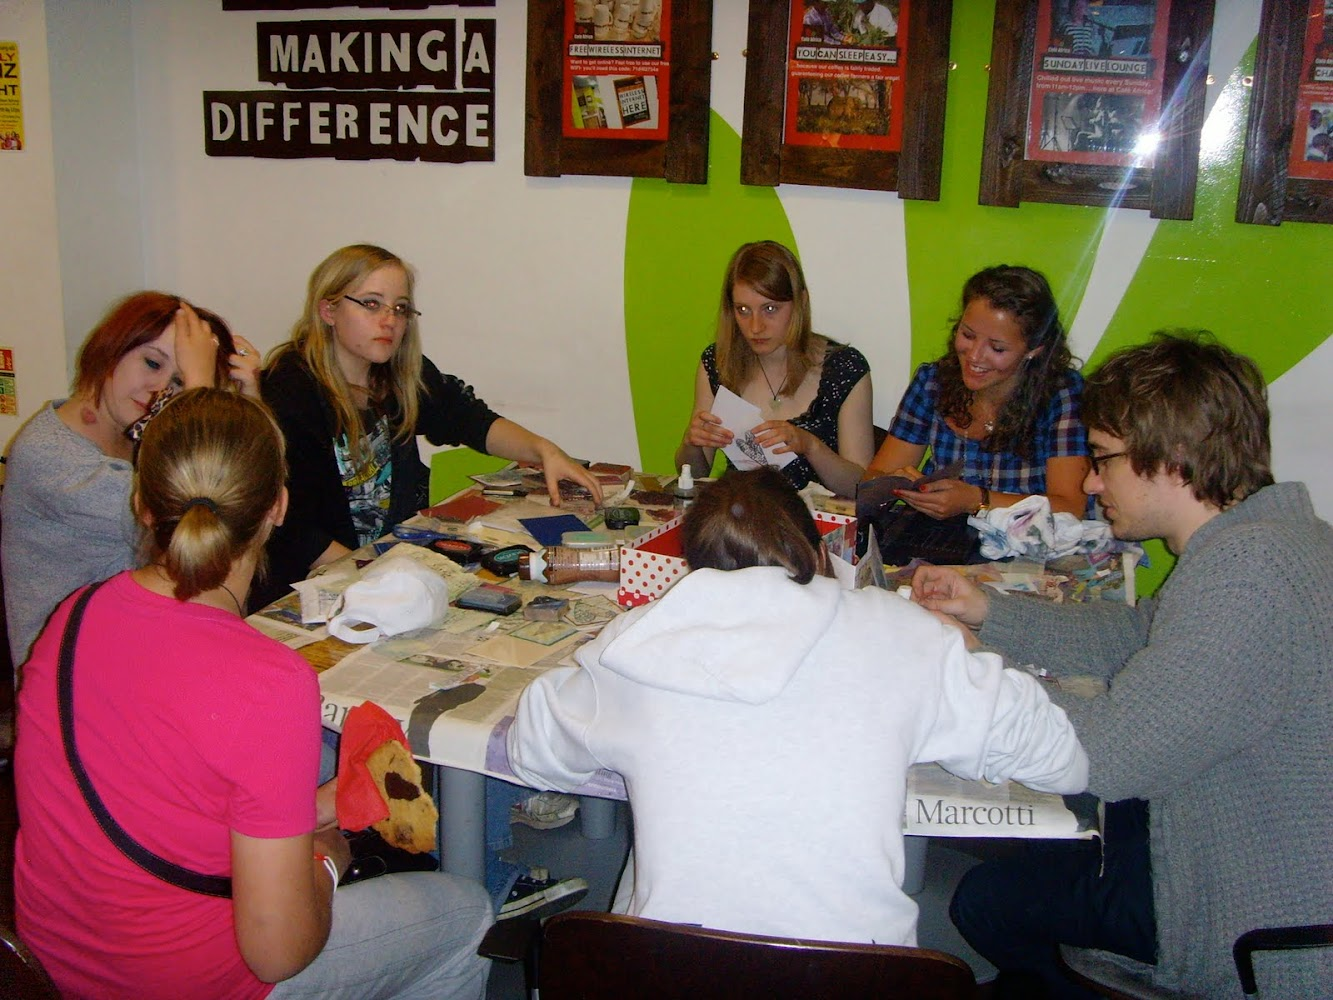 Card Making at Cafe Africa!